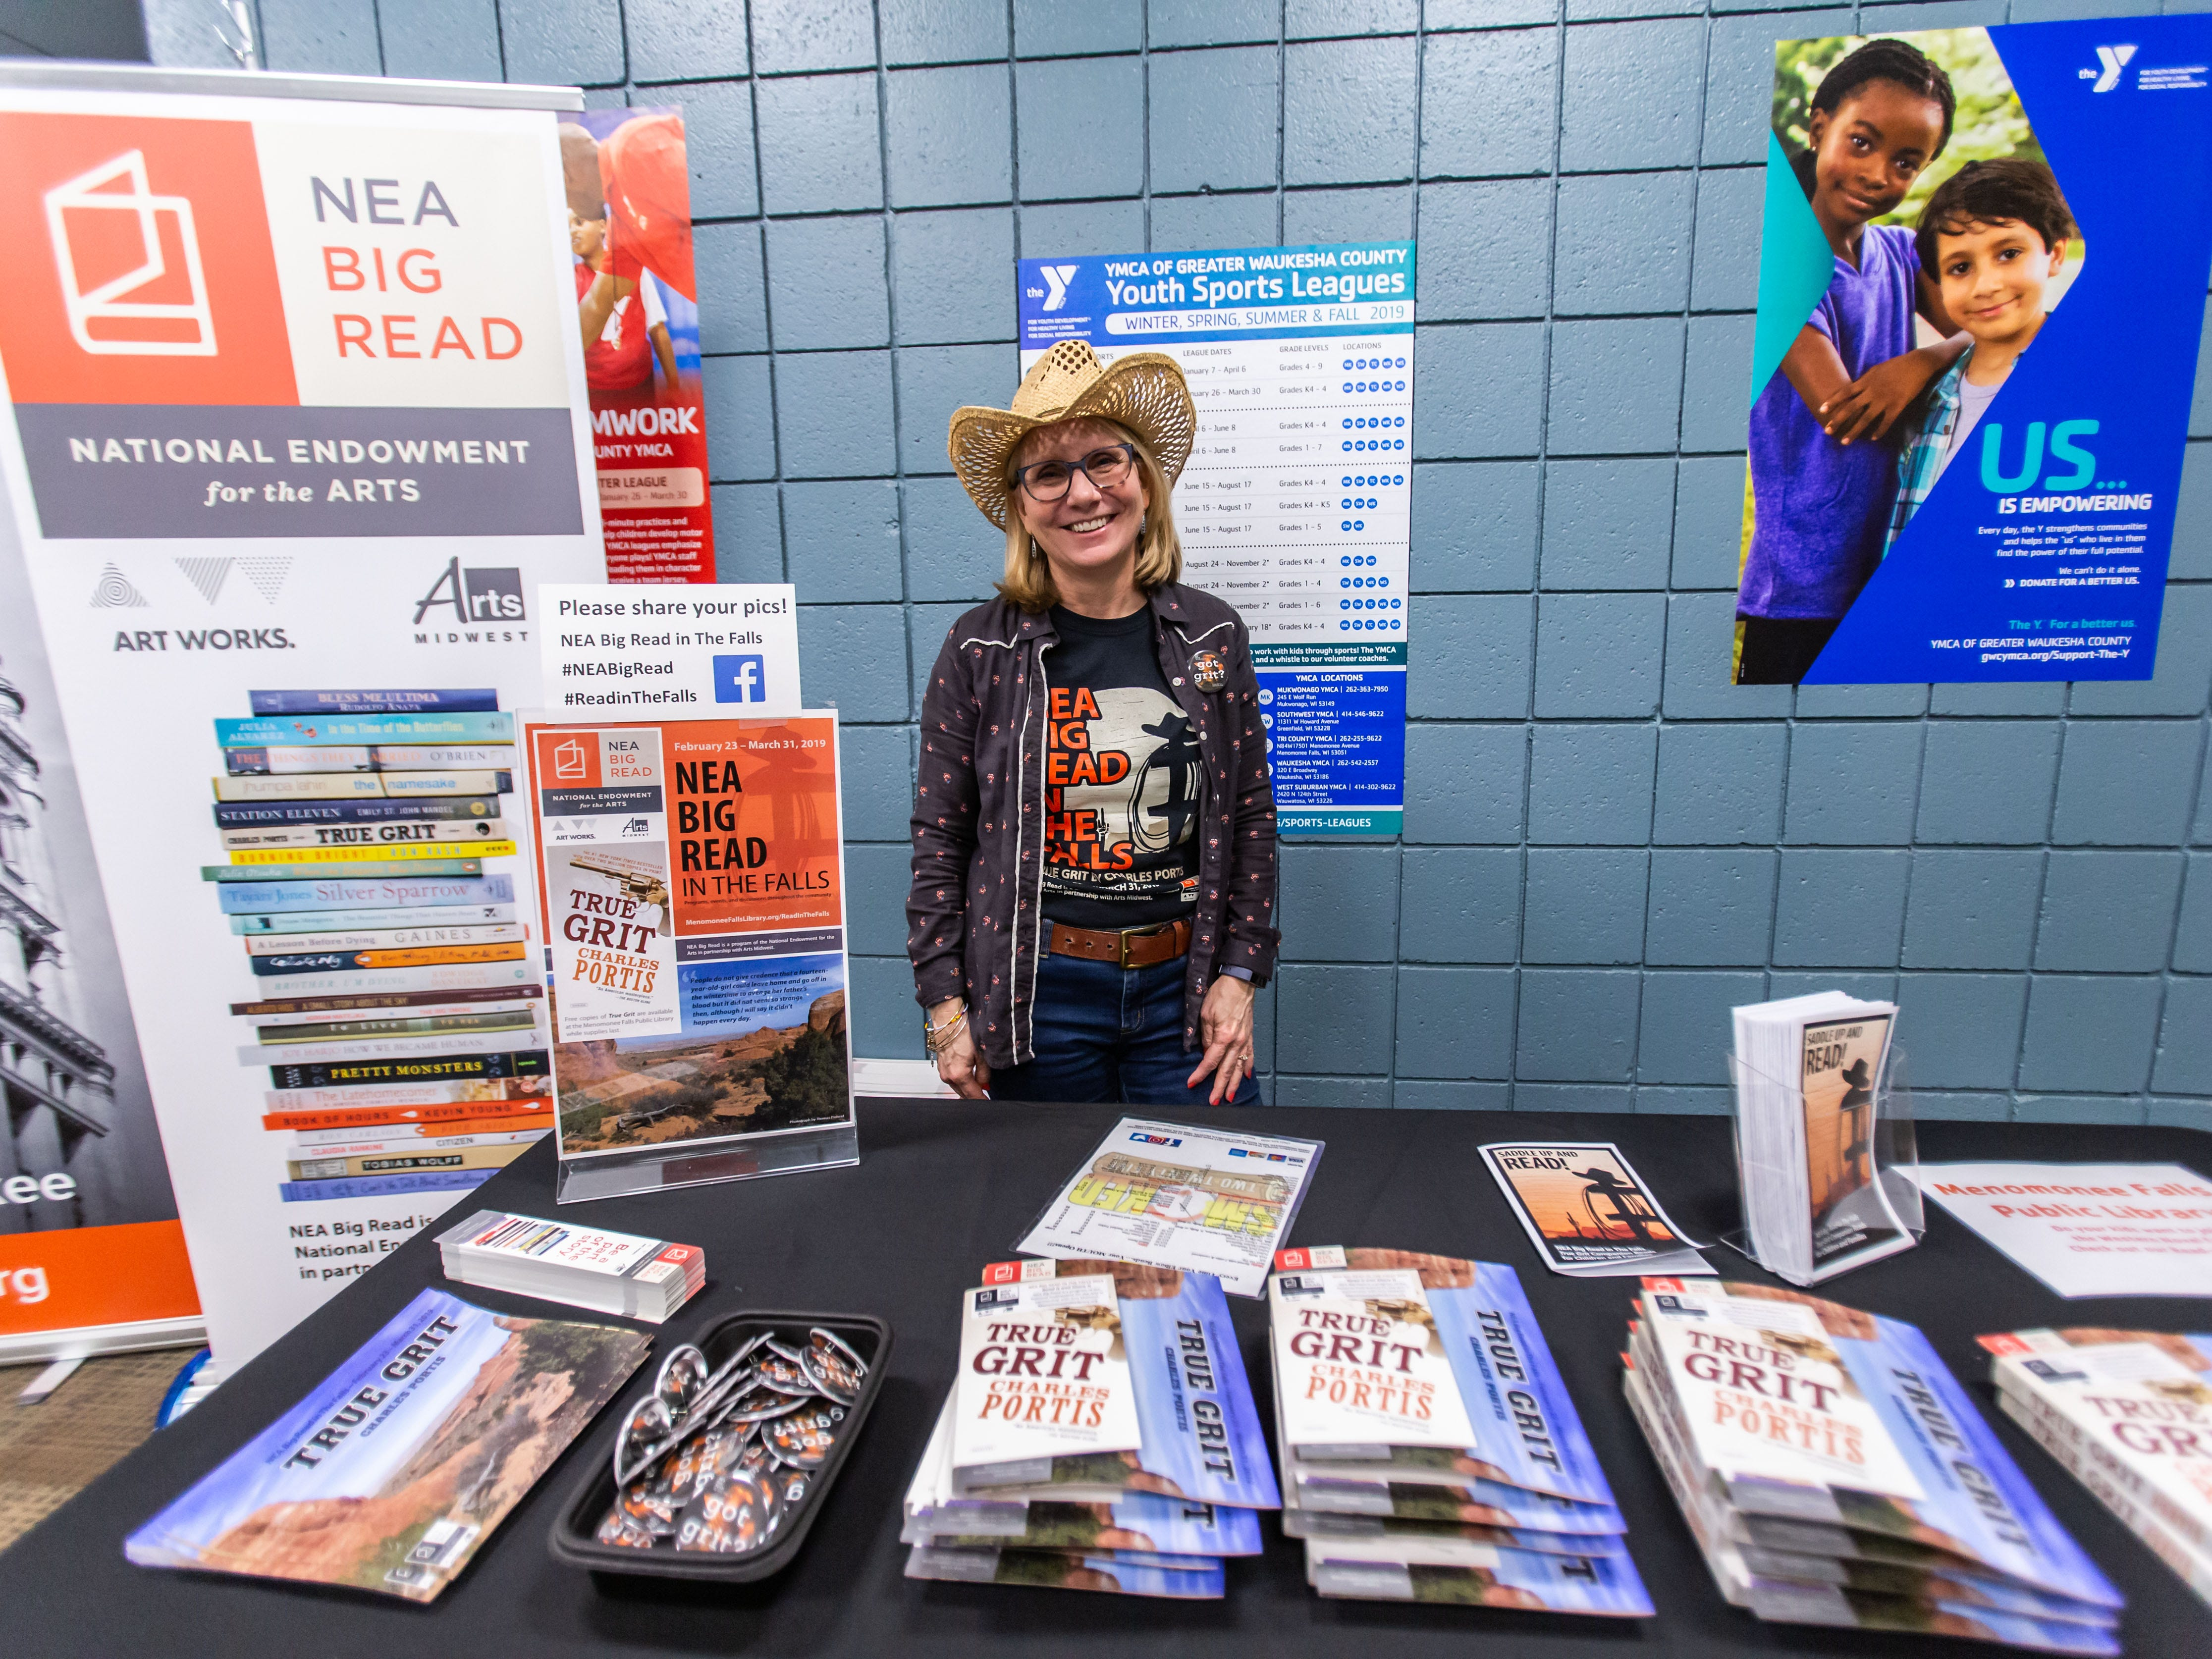 Menomonee Falls Library Director Karol Kennedy hands out free copies of the book True Grit during the Hometown Hoedown NEA Big-Read Kickoff Event at the Tri County YMCA in Menomonee Falls on Saturday, Feb. 23, 2019. The event featured live music, food, games, and western themed activities for the whole family.